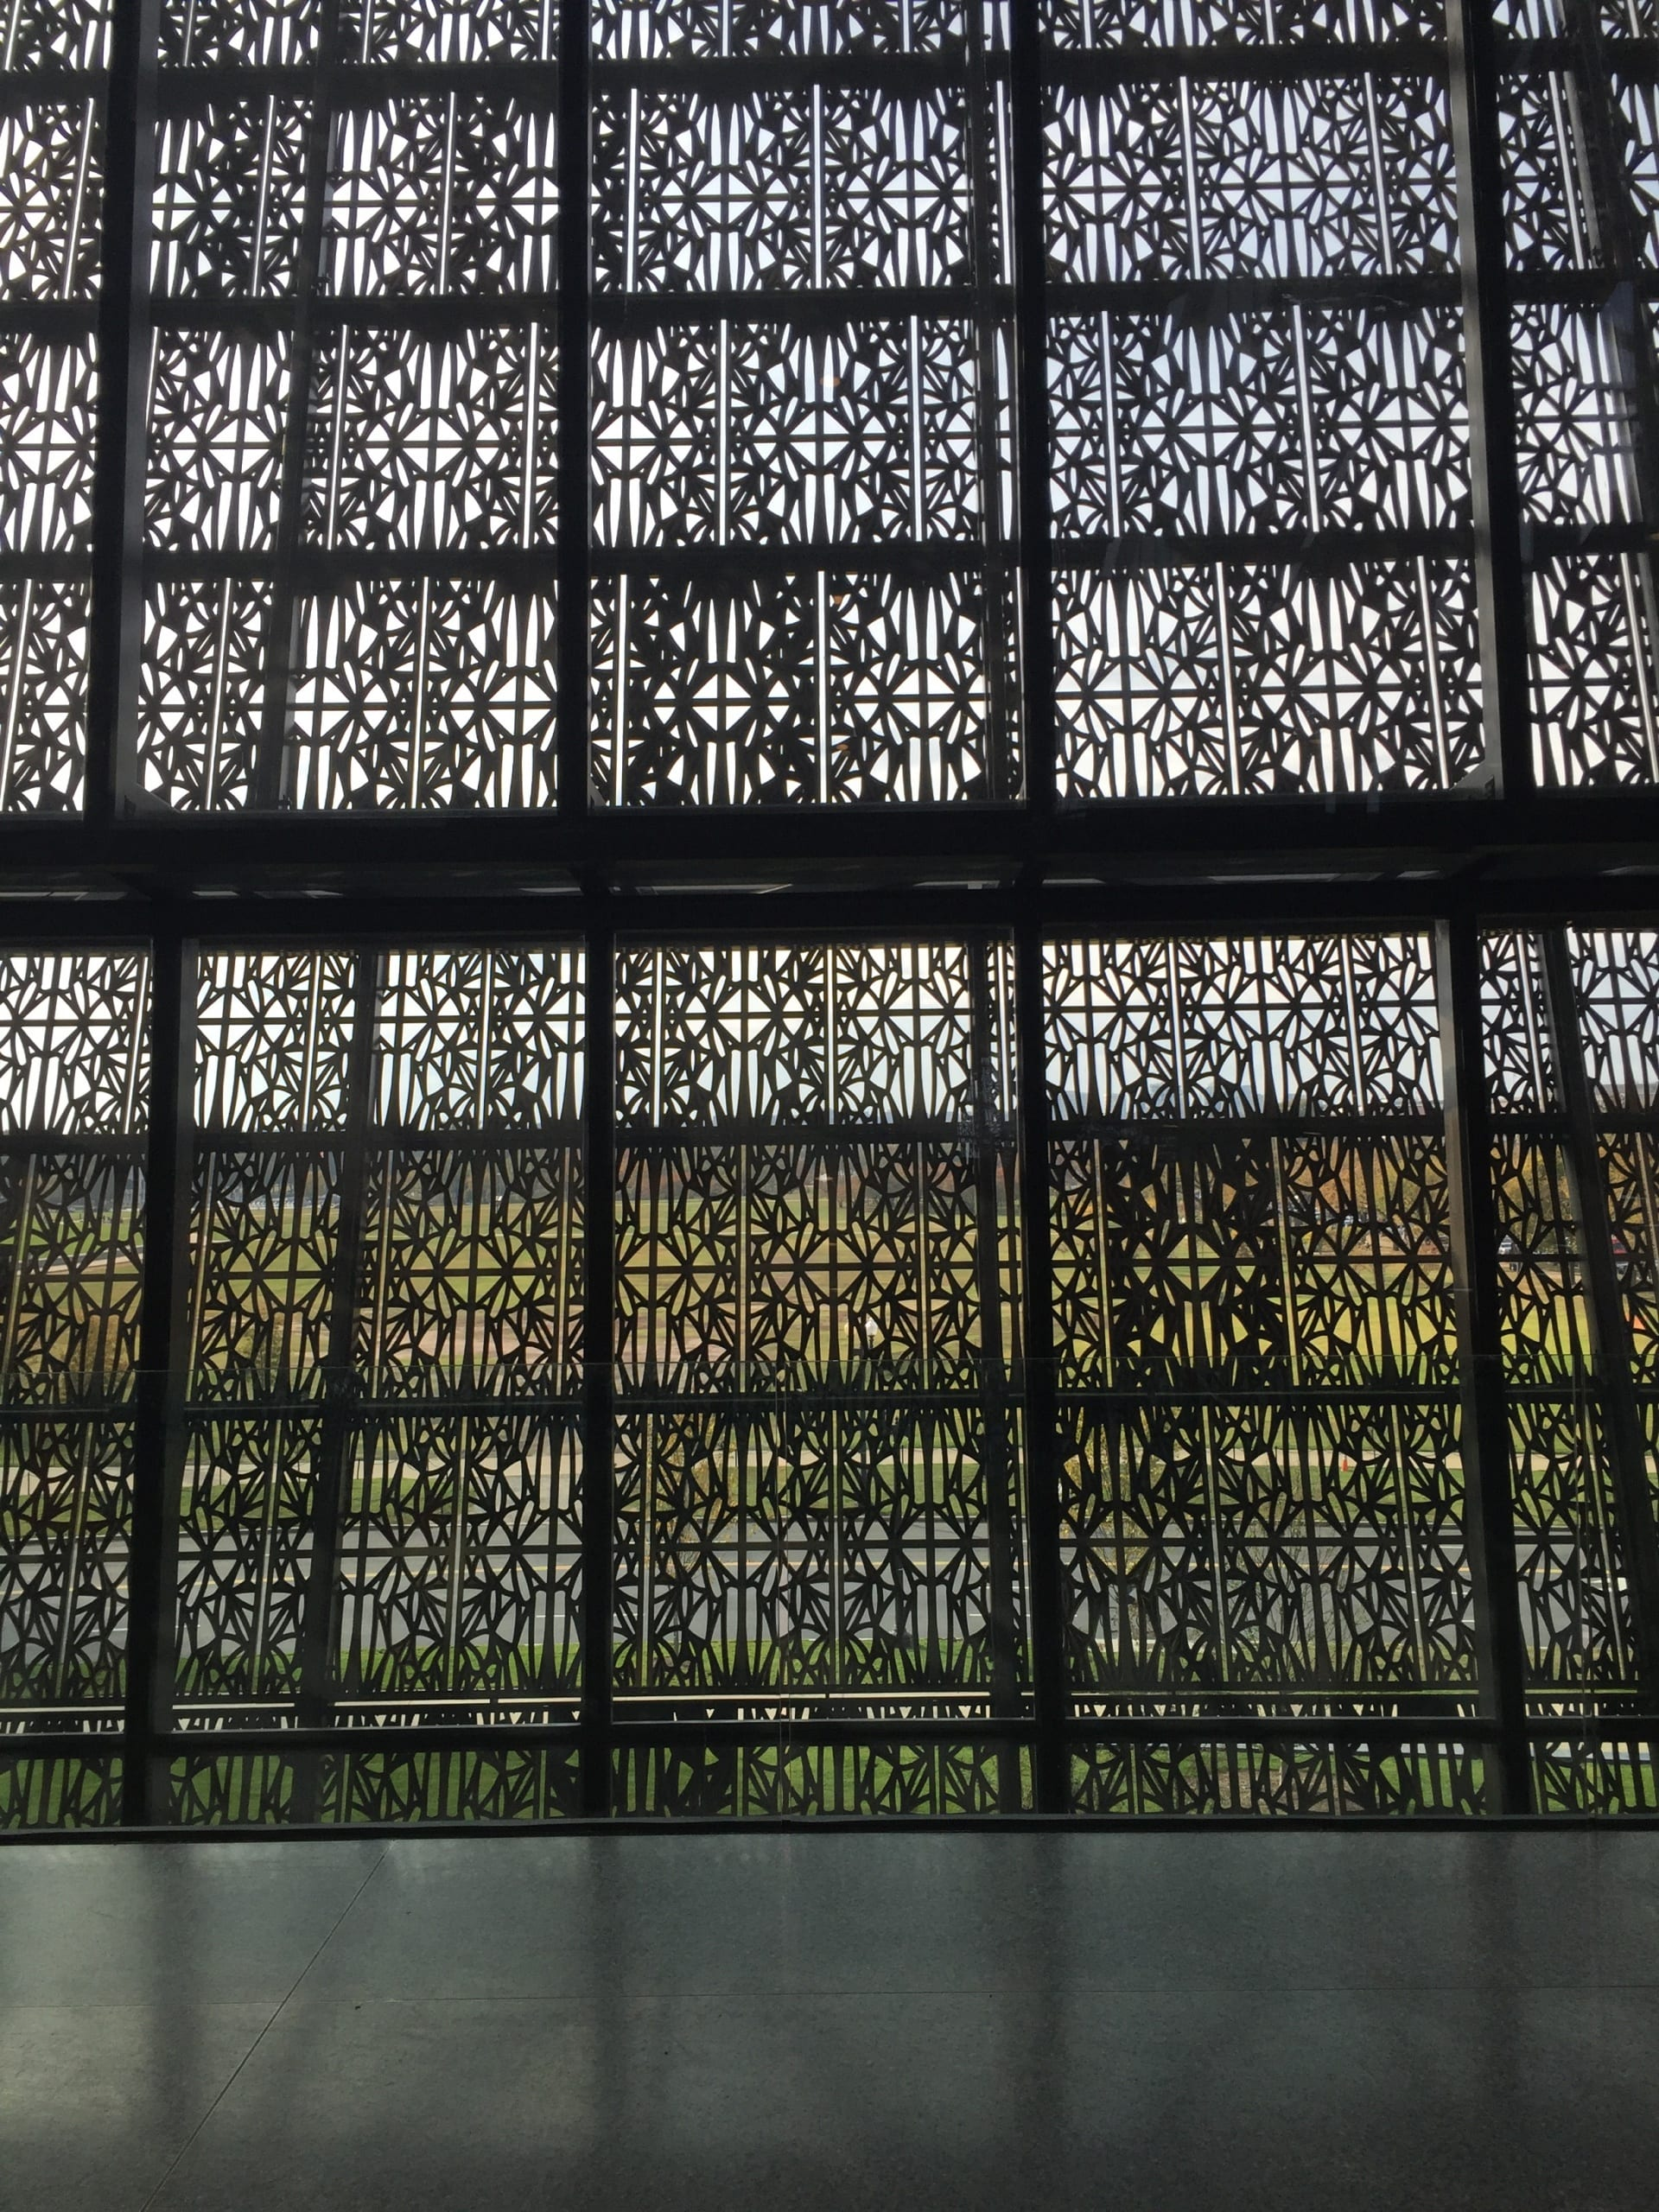 interior of museum showing light coming in through porous metal screens